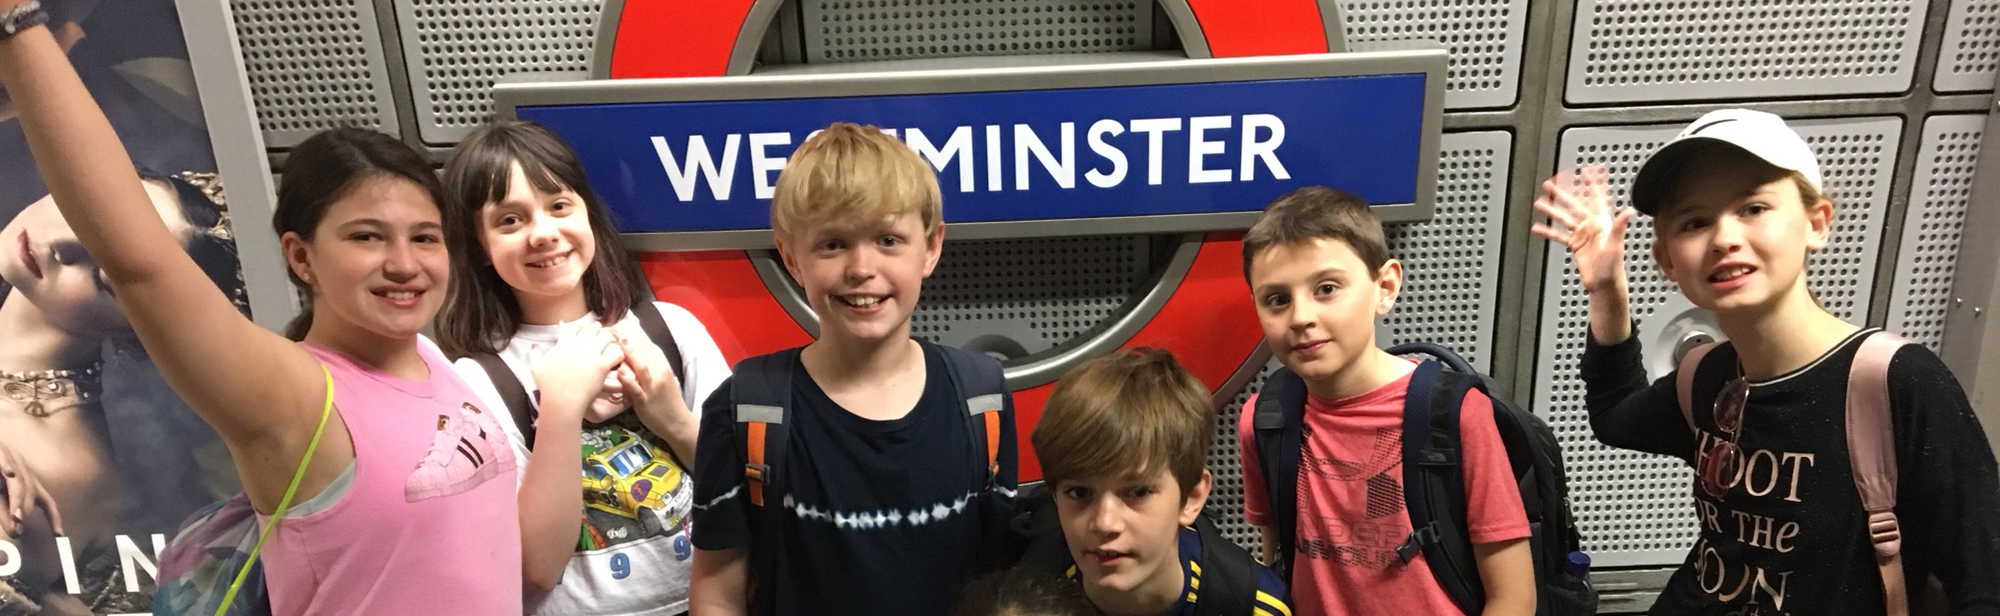 kids in westminster